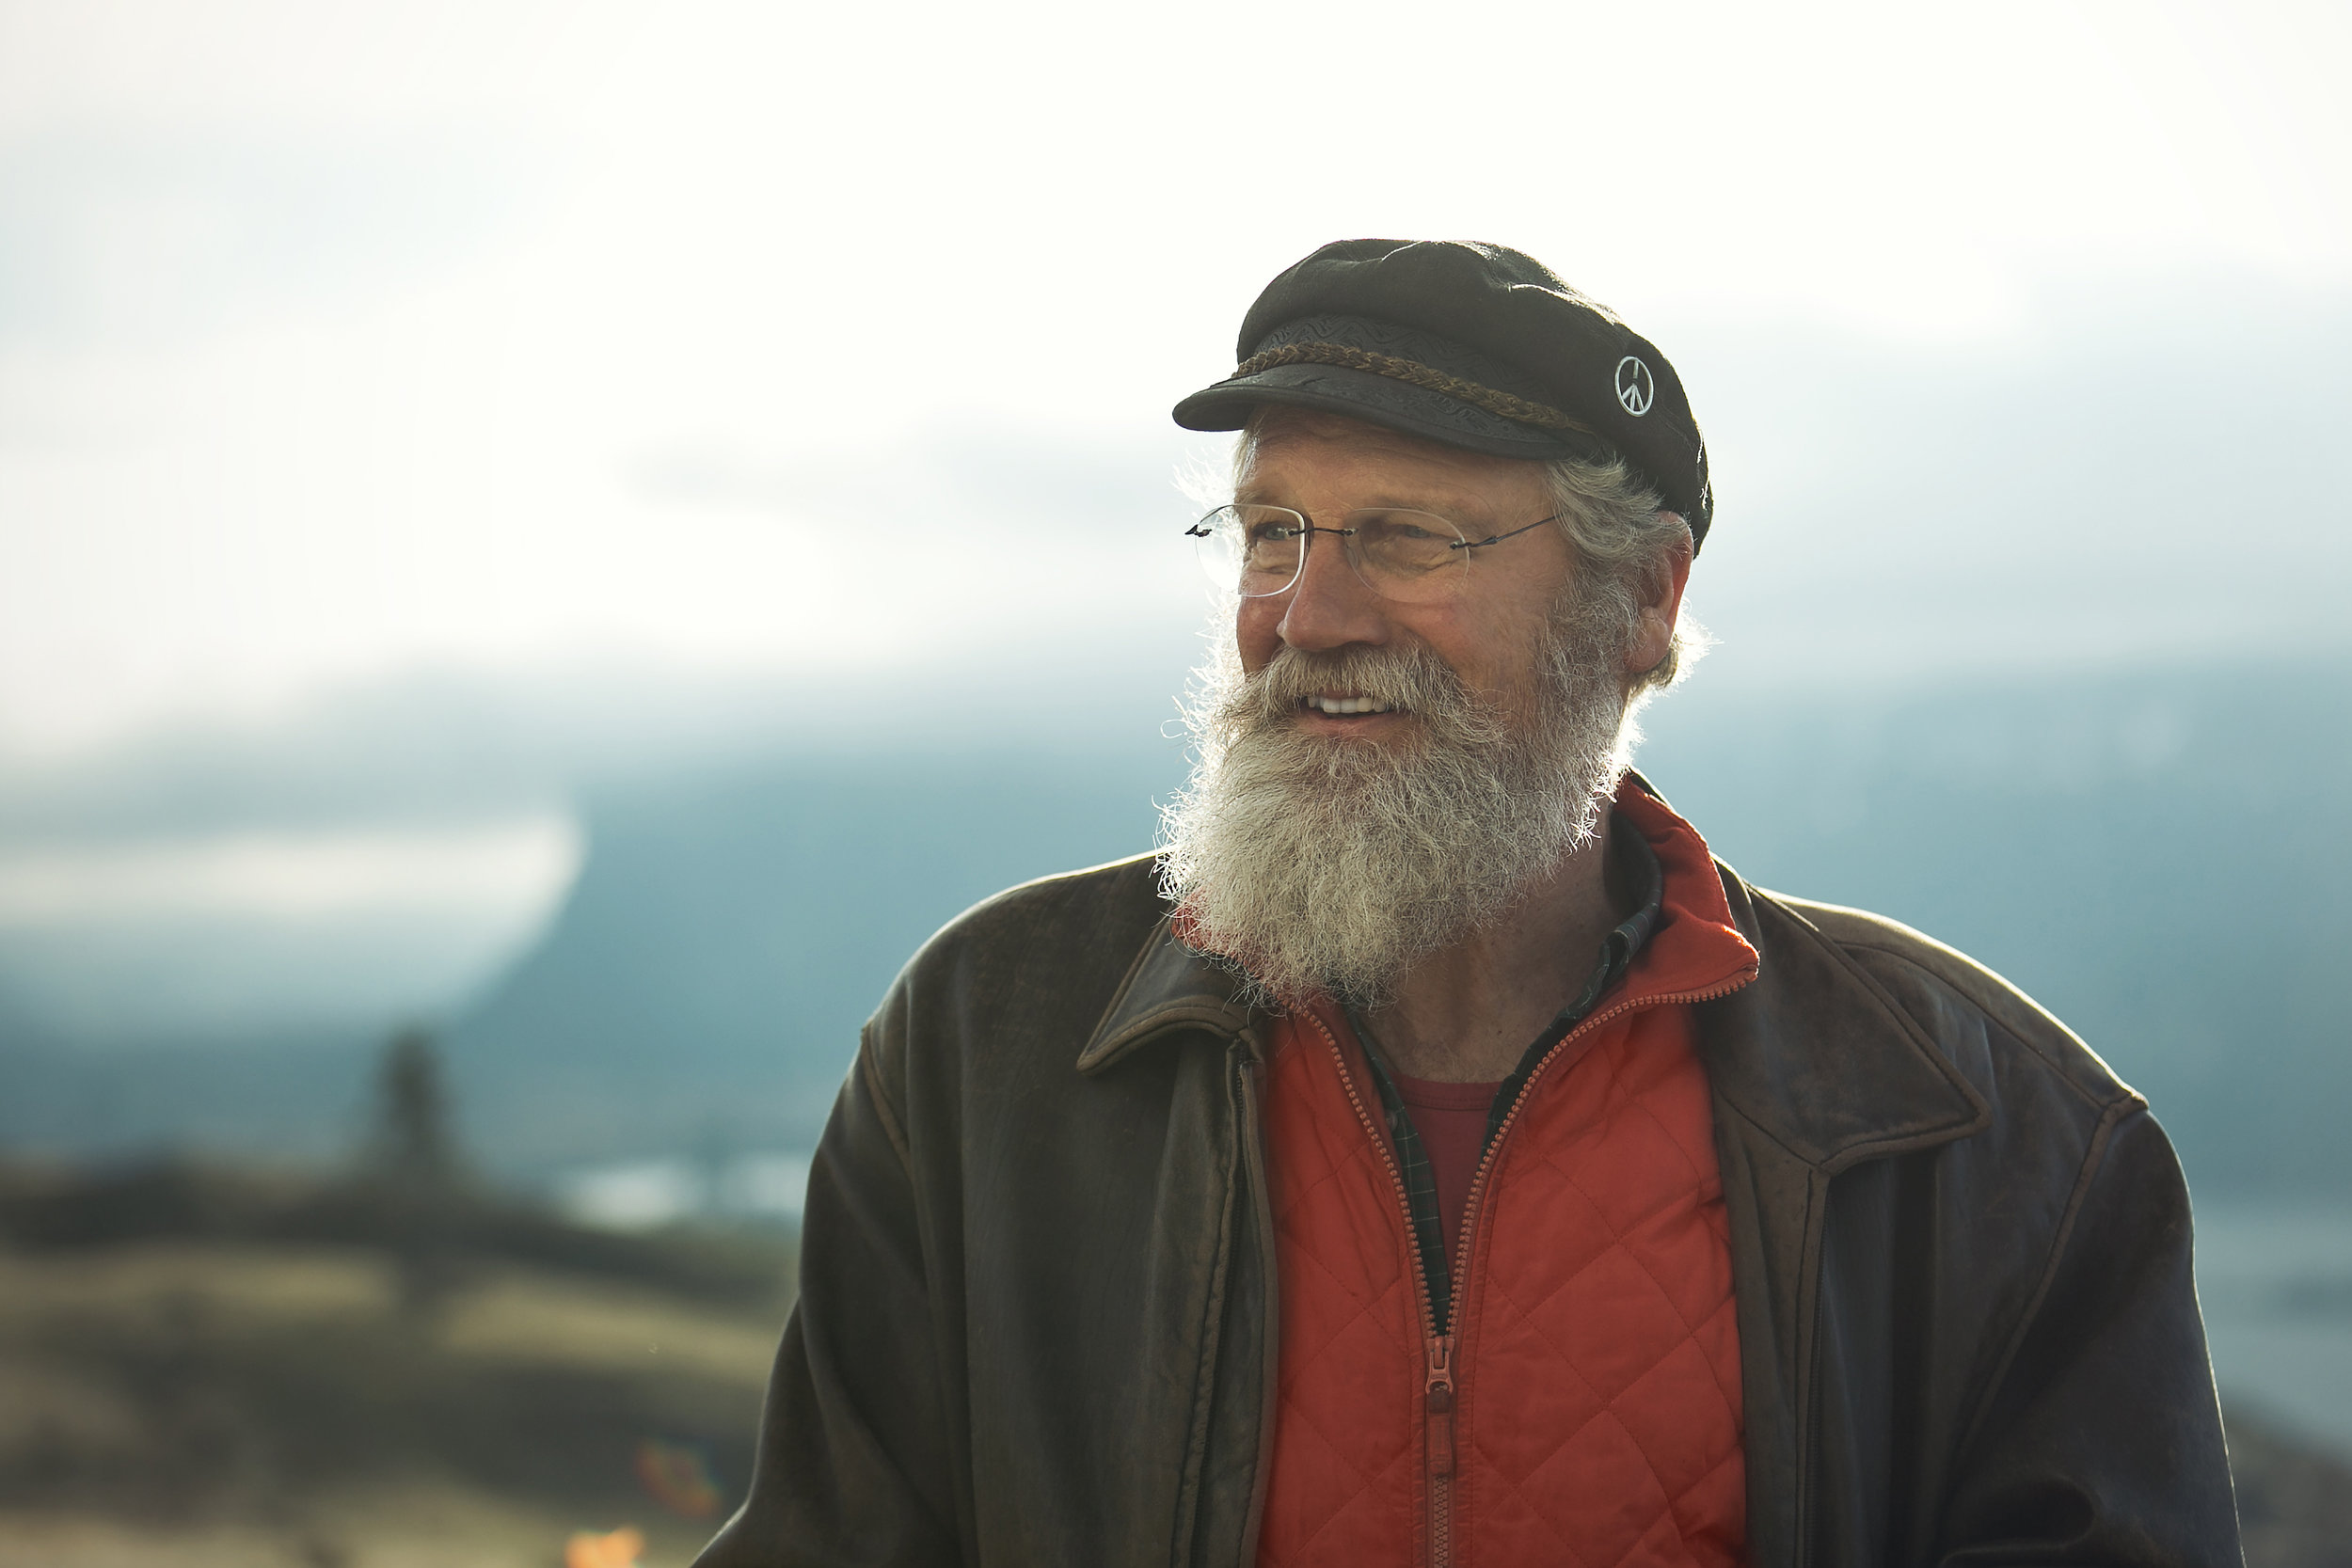 Don Gayton - author and Grasslands Ecologist